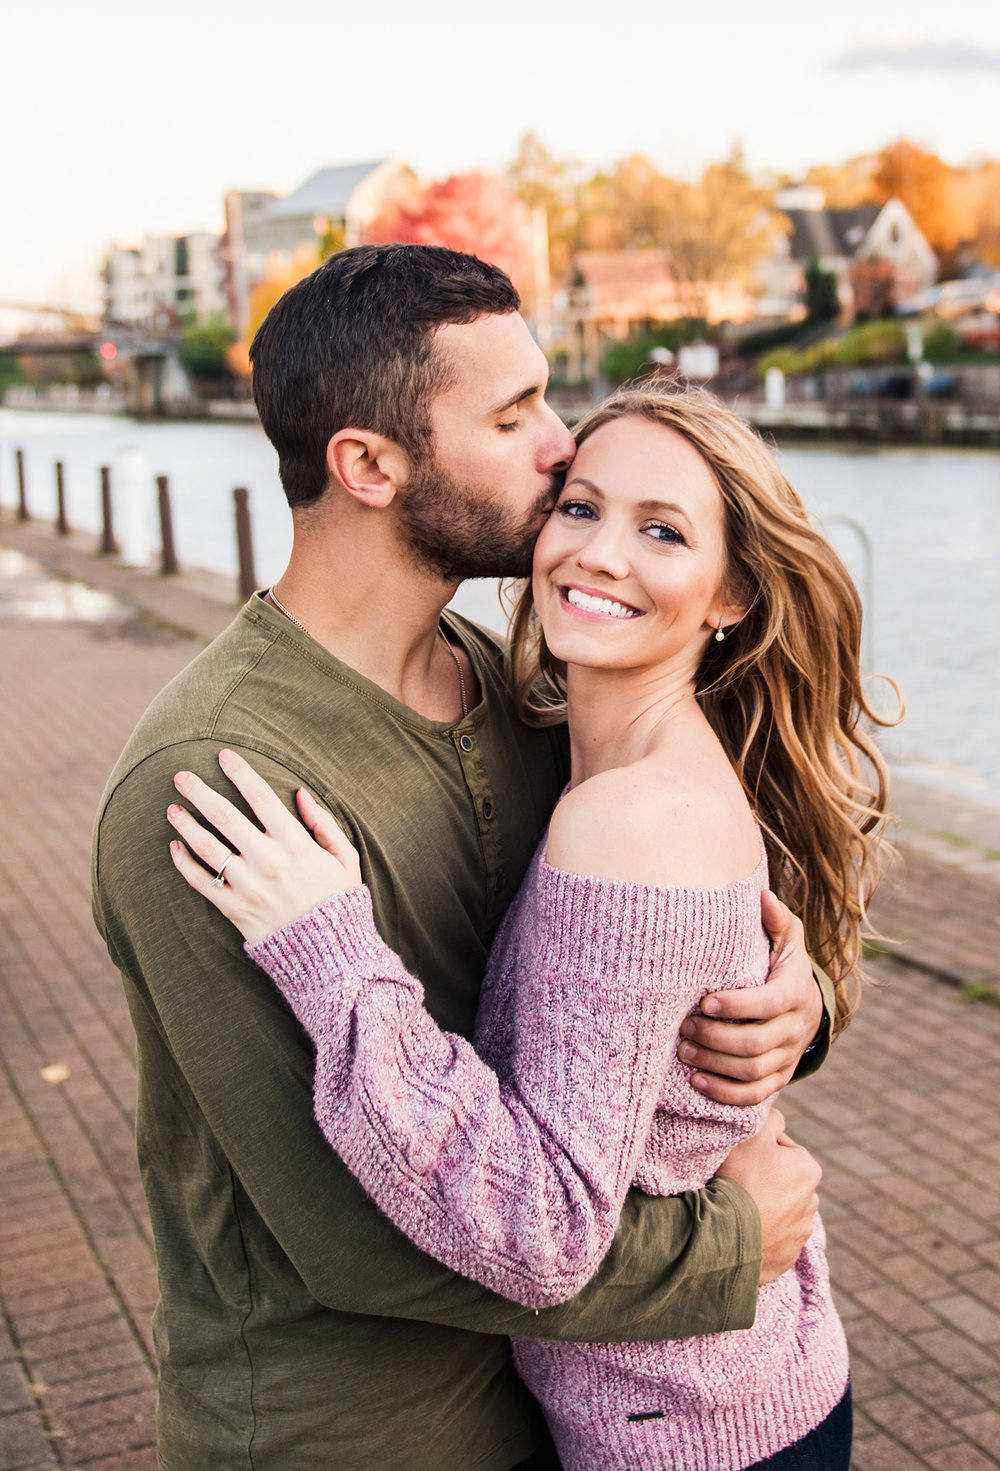 Village_of_Fairport_Rochester_Engagement_Session_JILL_STUDIO_Rochester_NY_Photographer_DSC_8731.jpg